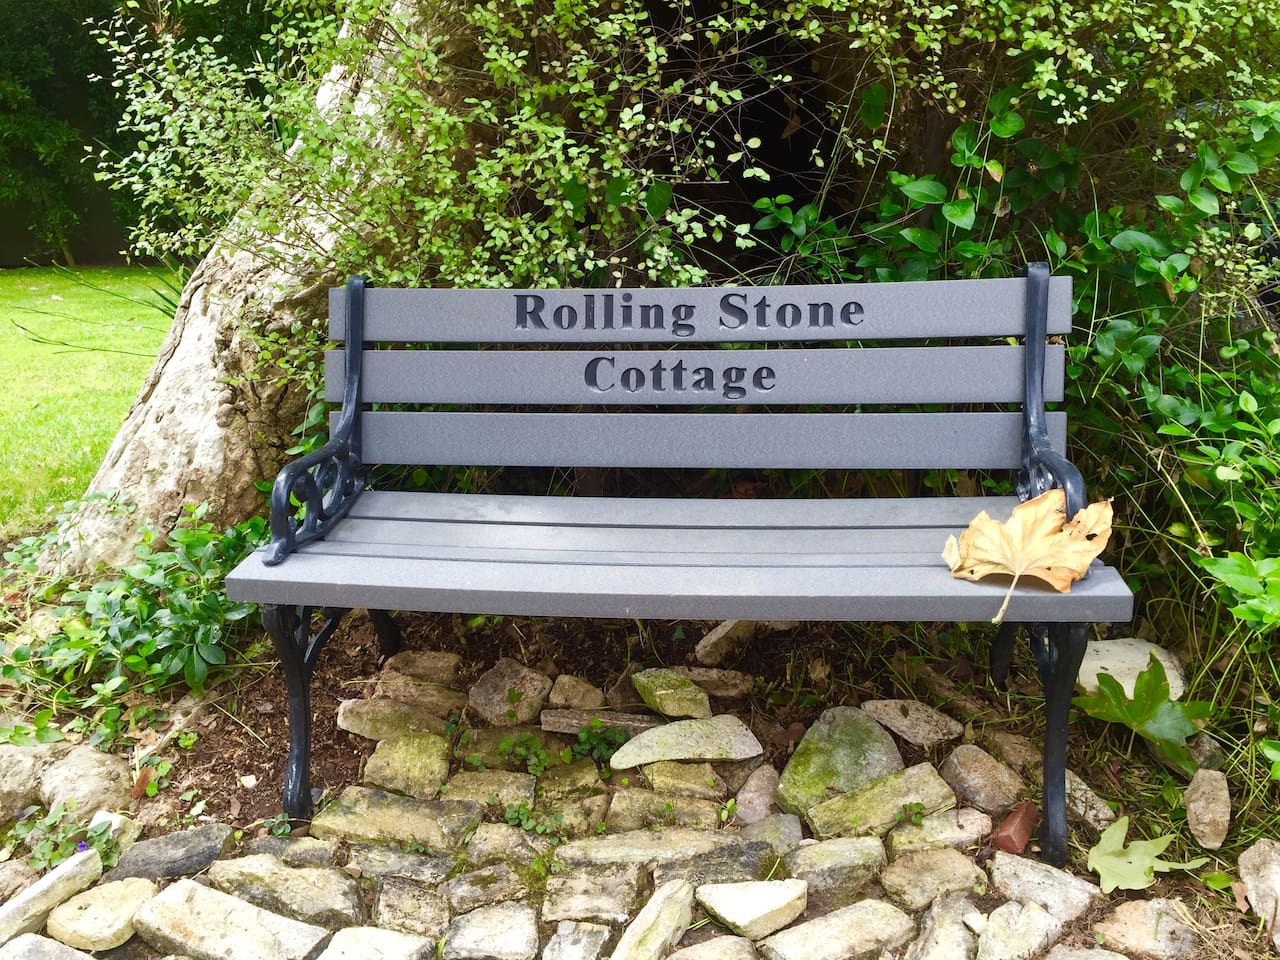 Rolling Stone Cottage Bench